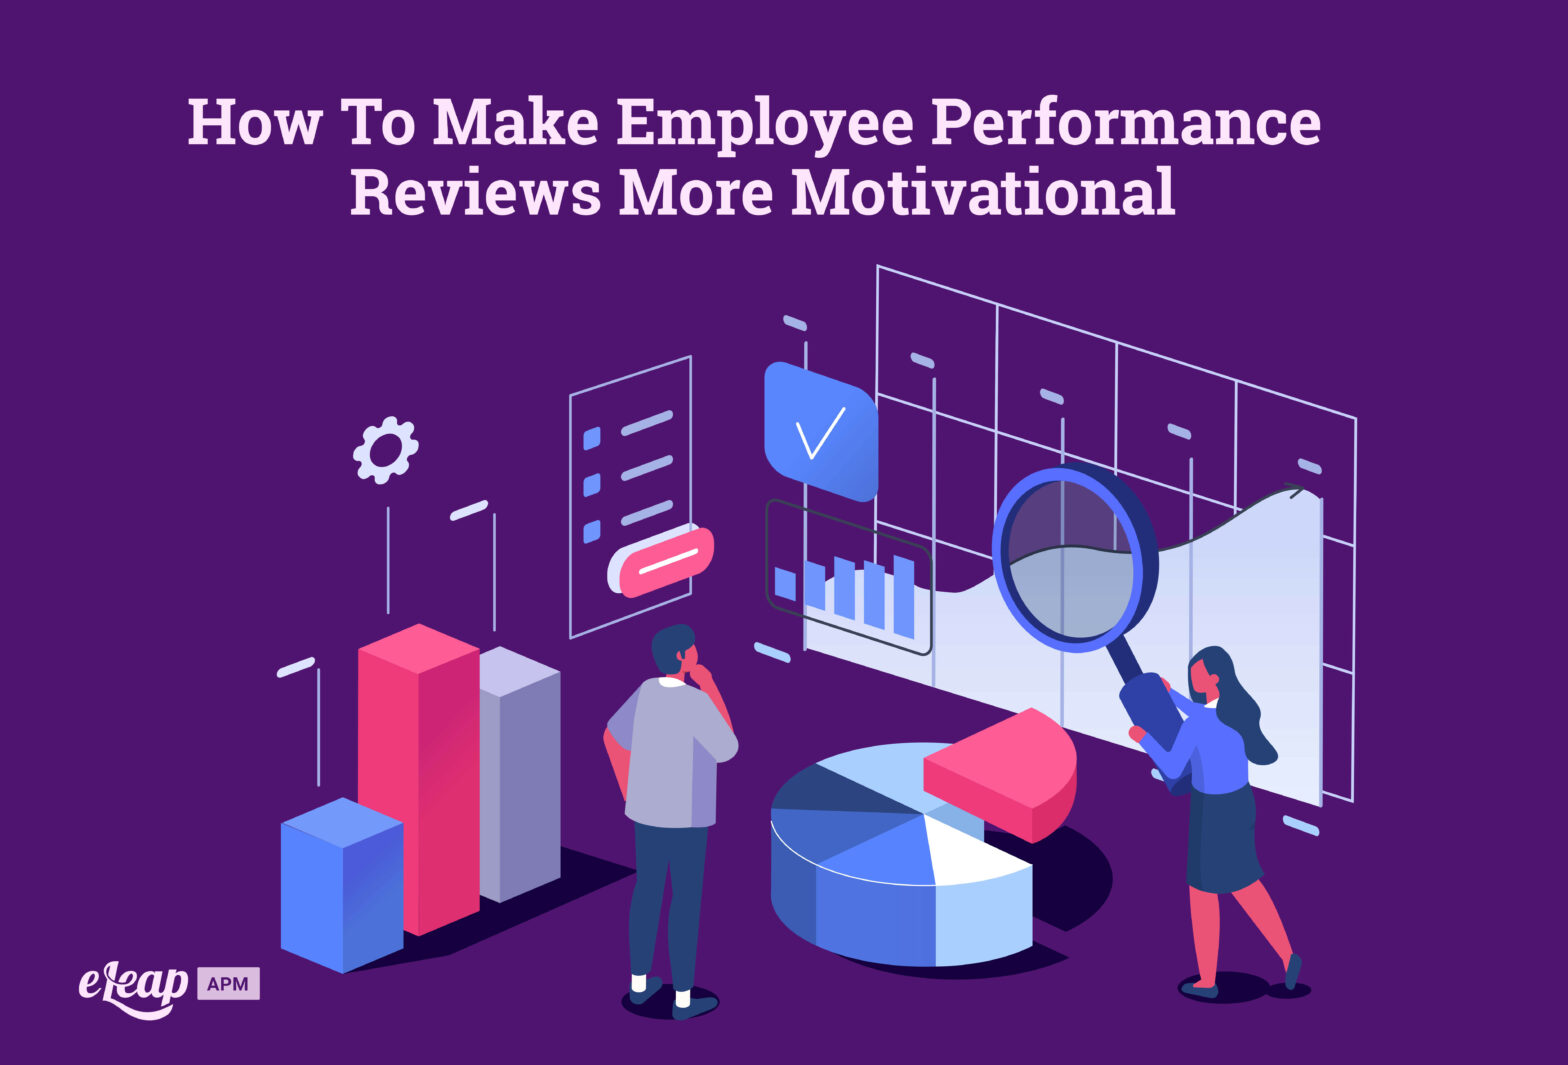 How To Make Employee Performance Reviews More Motivational